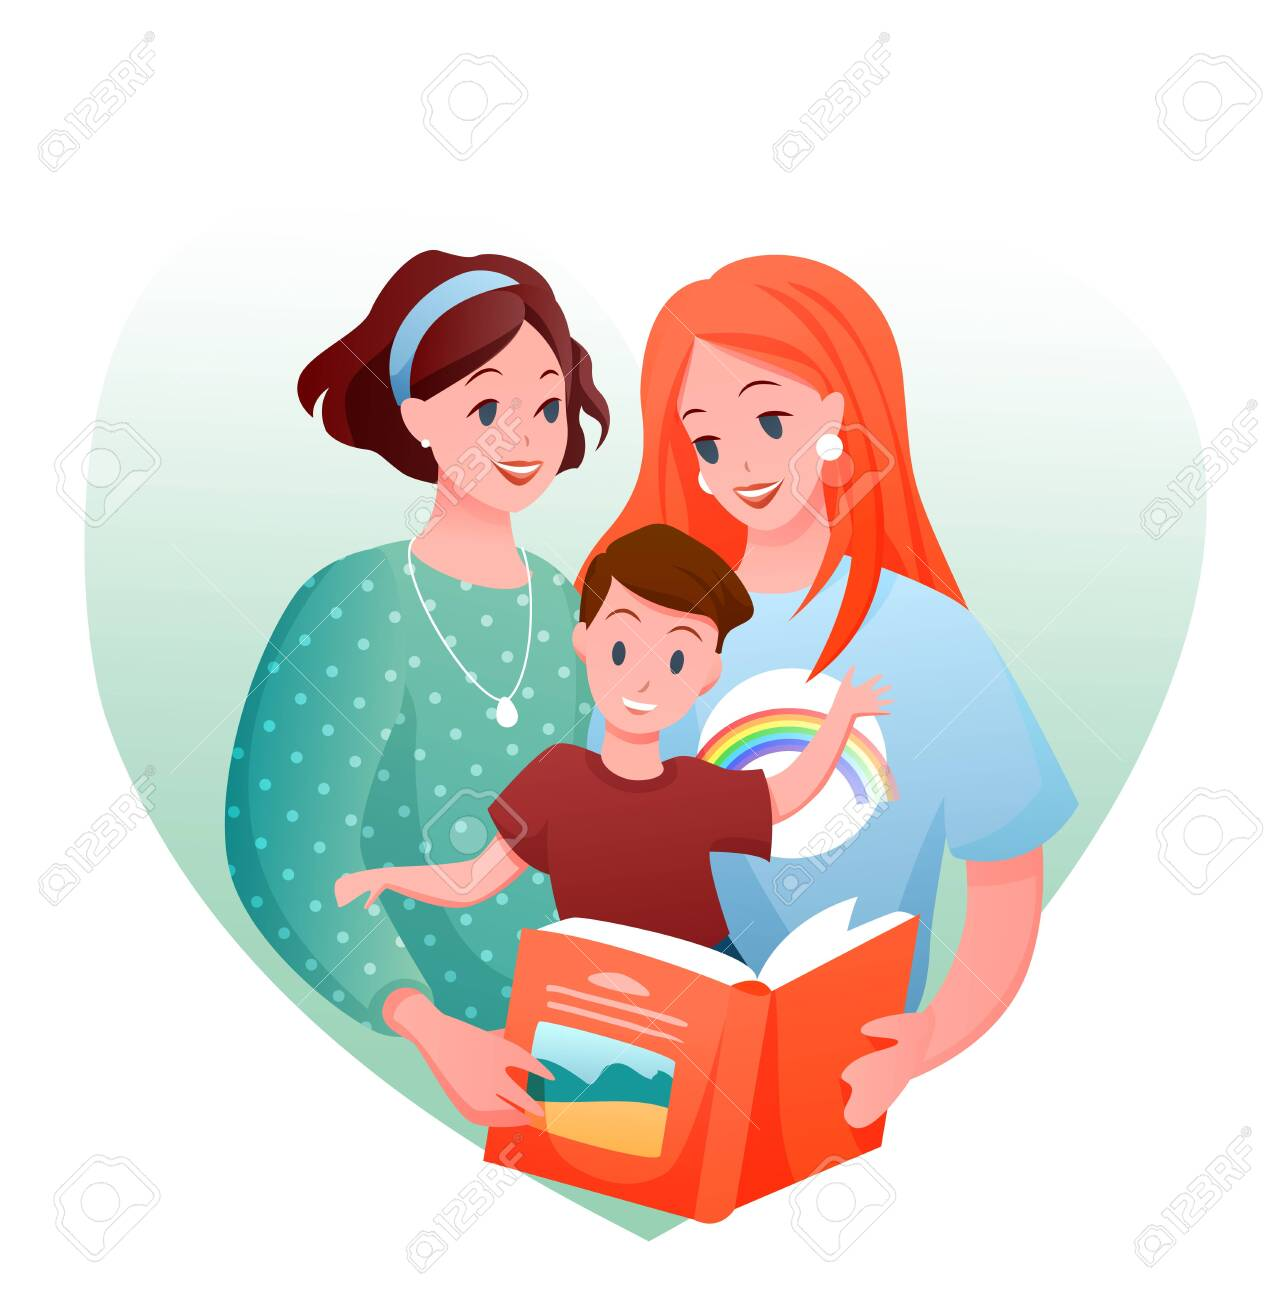 Lesbian family vector illustration. Cartoon flat happy loving two mother characters with kid boy reading book together, love and parenting in LGBT family concept isolated on white - 151954110